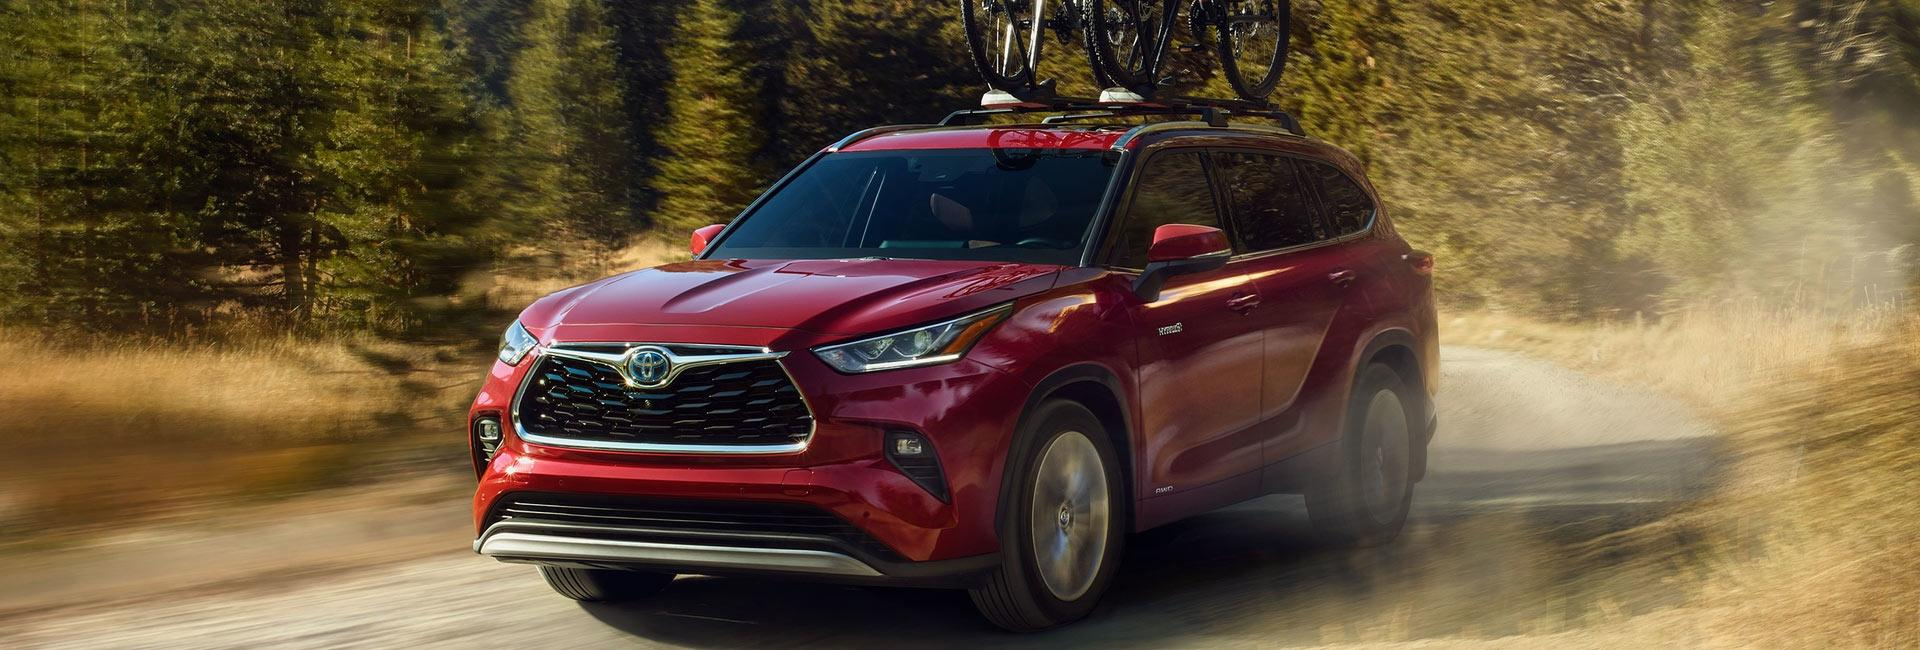 Picture of the 2020 Toyota Highlander for sale at Spitzer Toyota